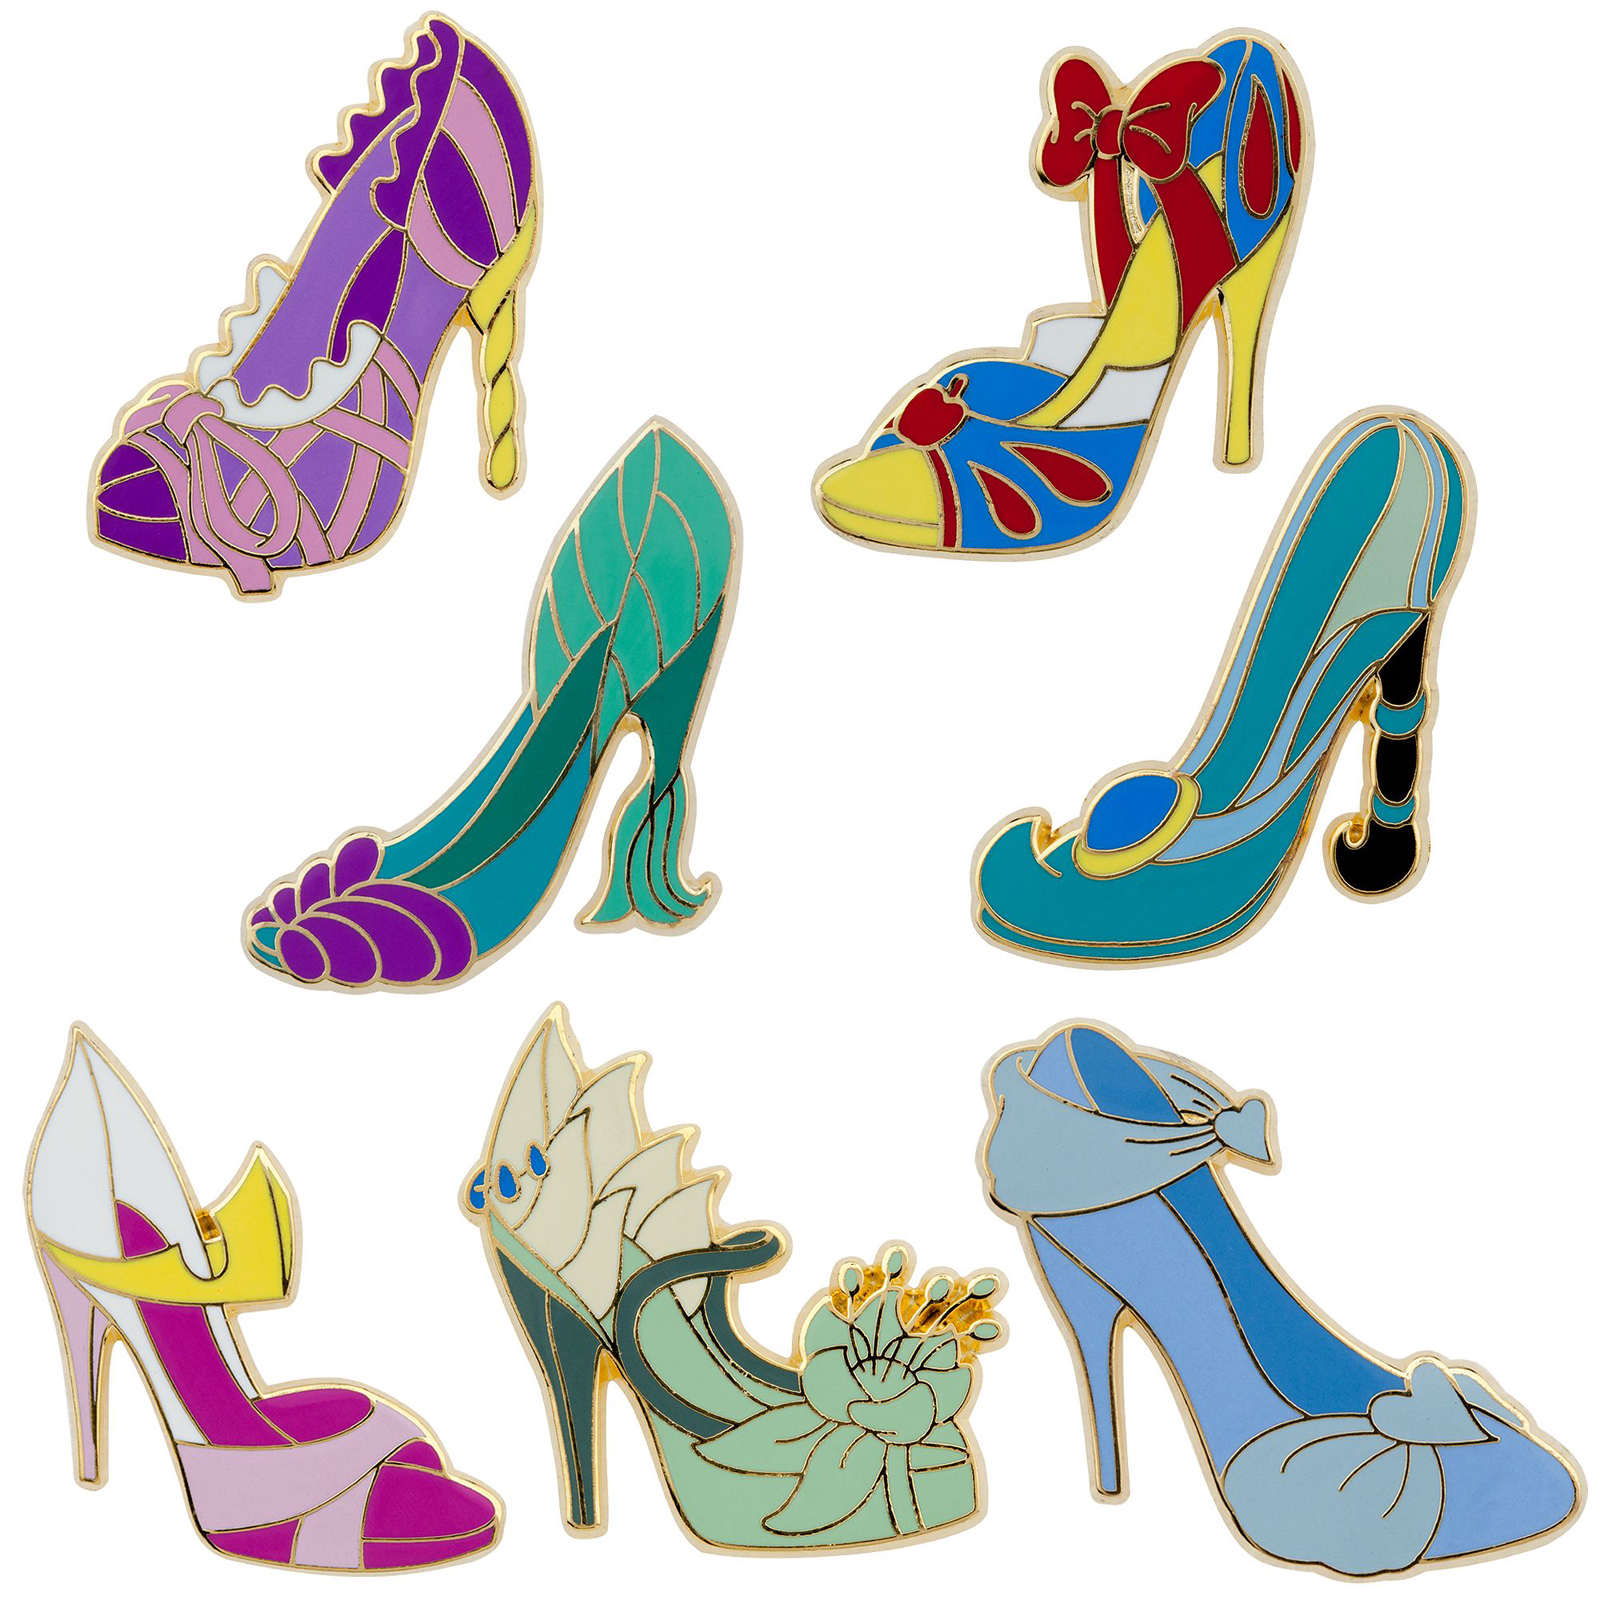 Filmic light snow white archive disney princess slippers pin set the disney princess slippers pin set was released earlier in 2013 set of seven on card slippers inspired by snow white cinderella aurora ariel buycottarizona